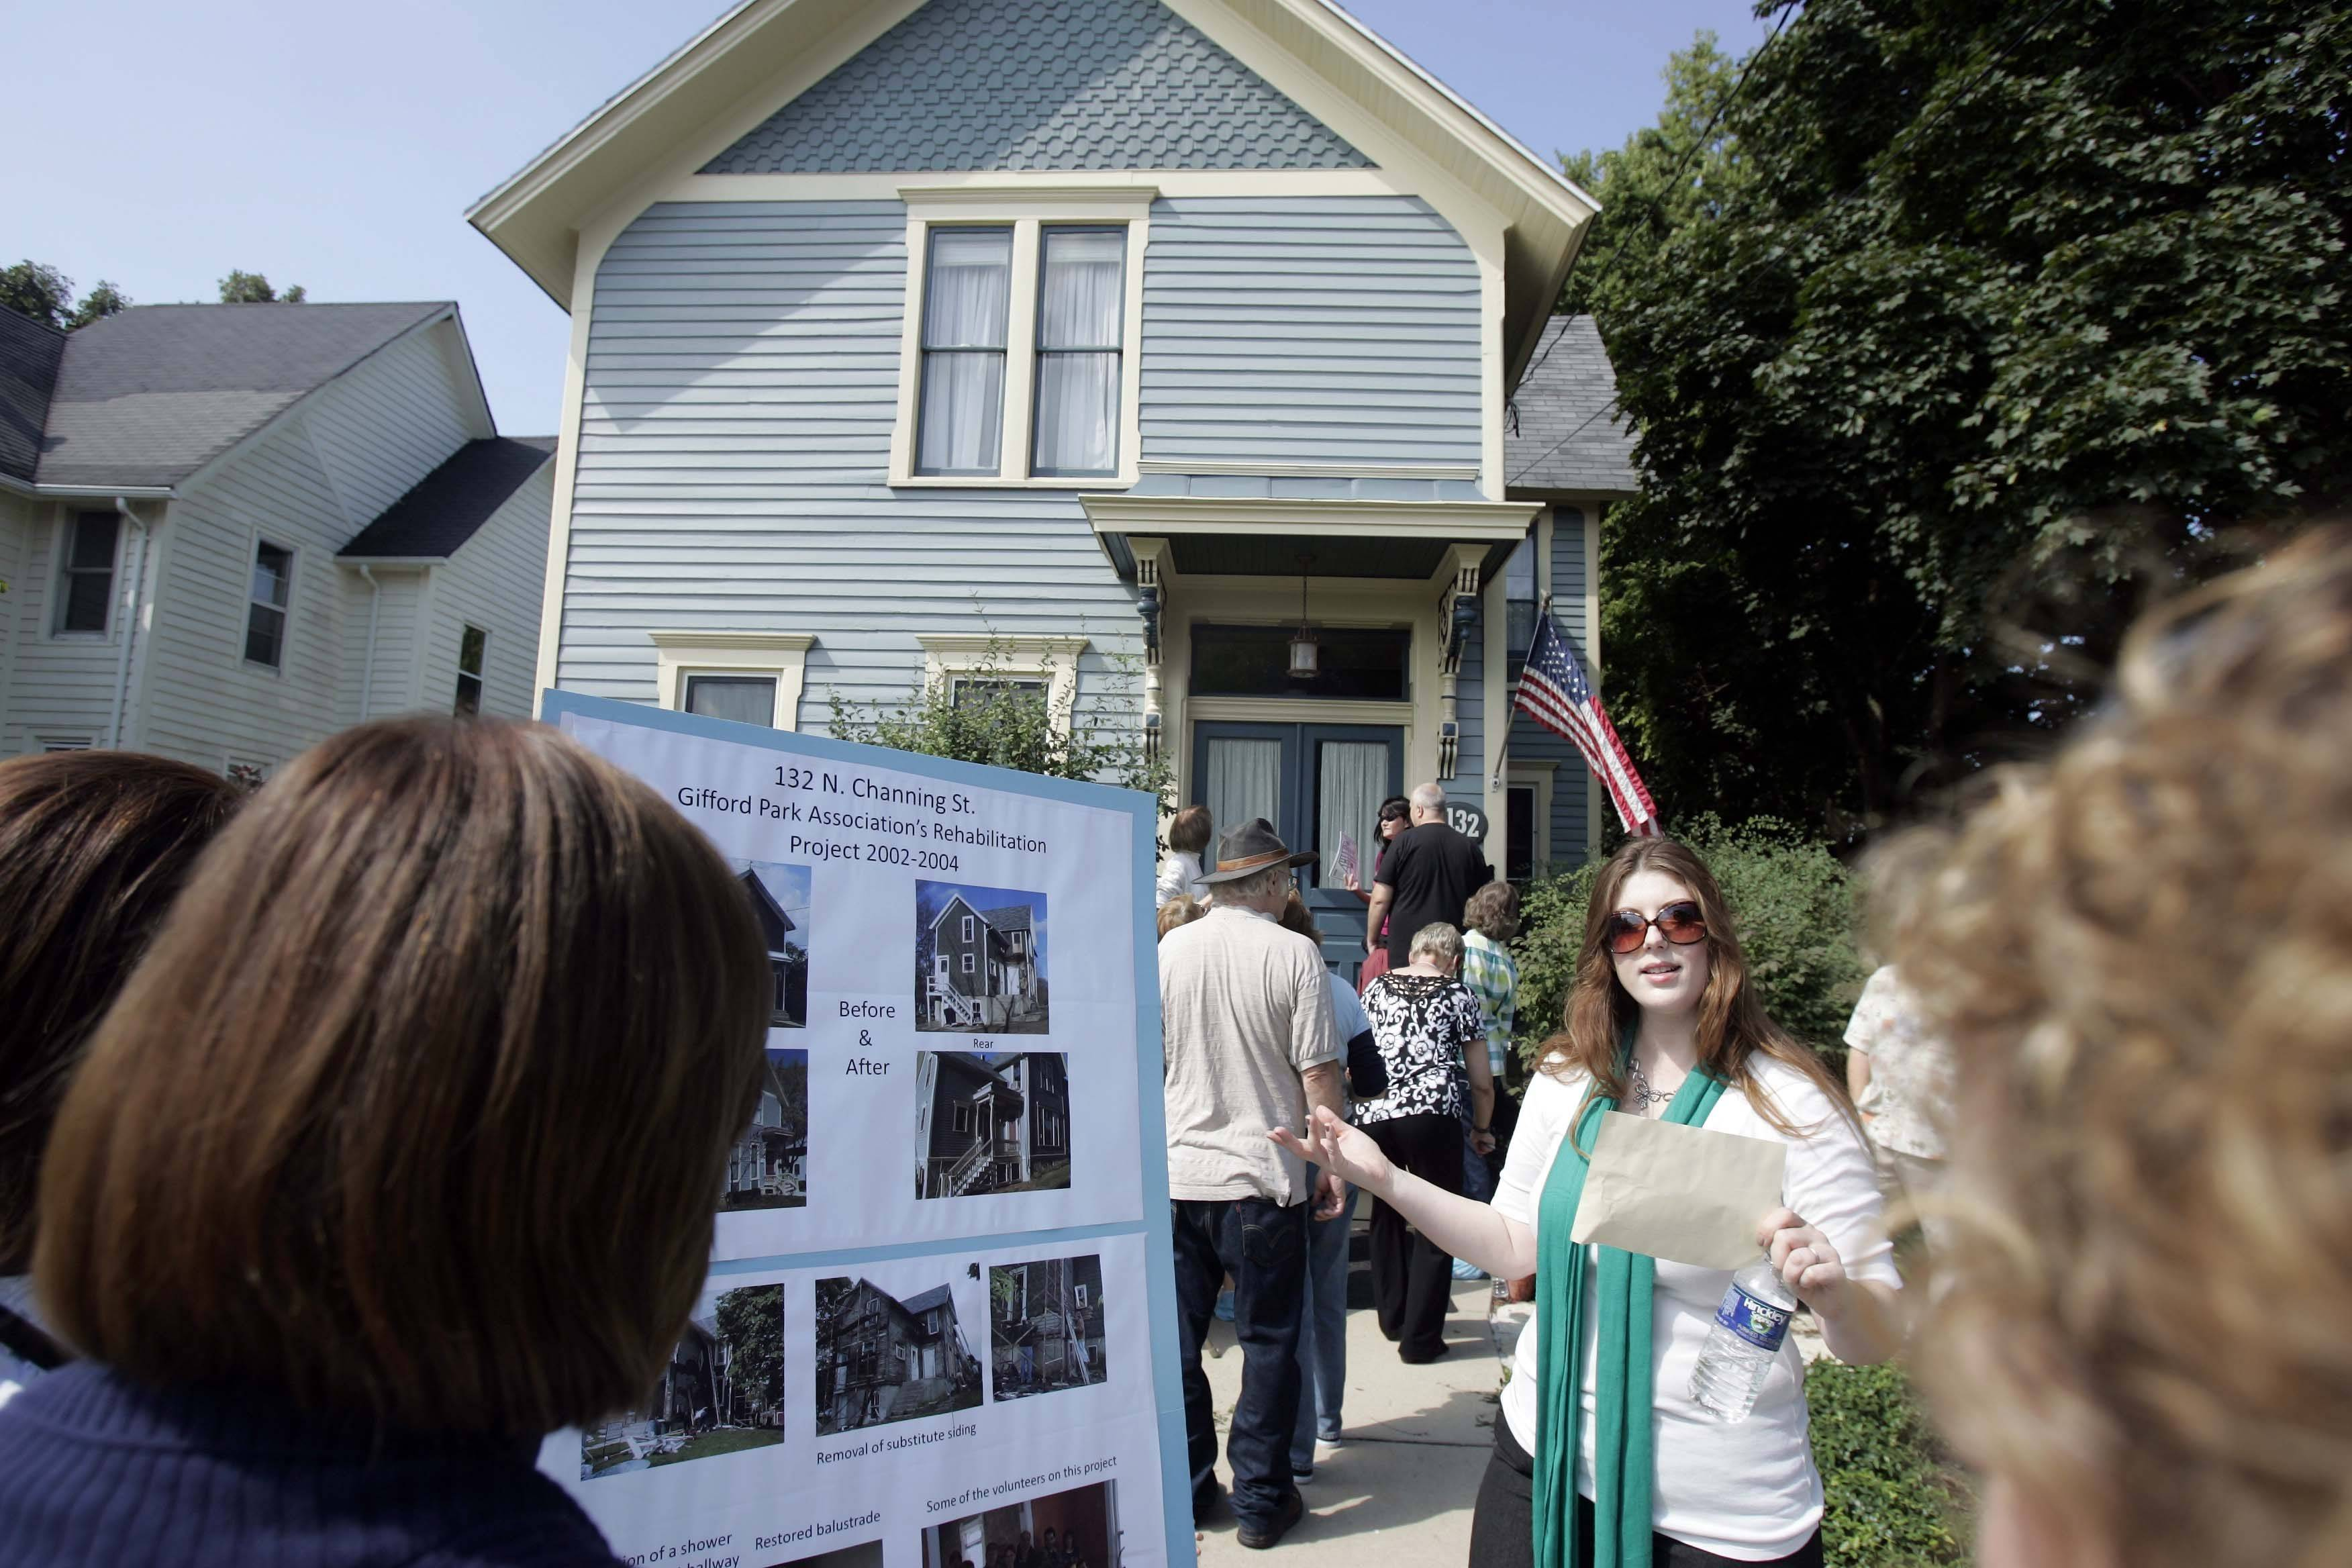 Amanda Carlson talks about the renovations that took place at 132 N. Channing St., which was one of the homes on the Gifford Park Association�s 30th annual Historic House Tour on Saturday in Elgin.